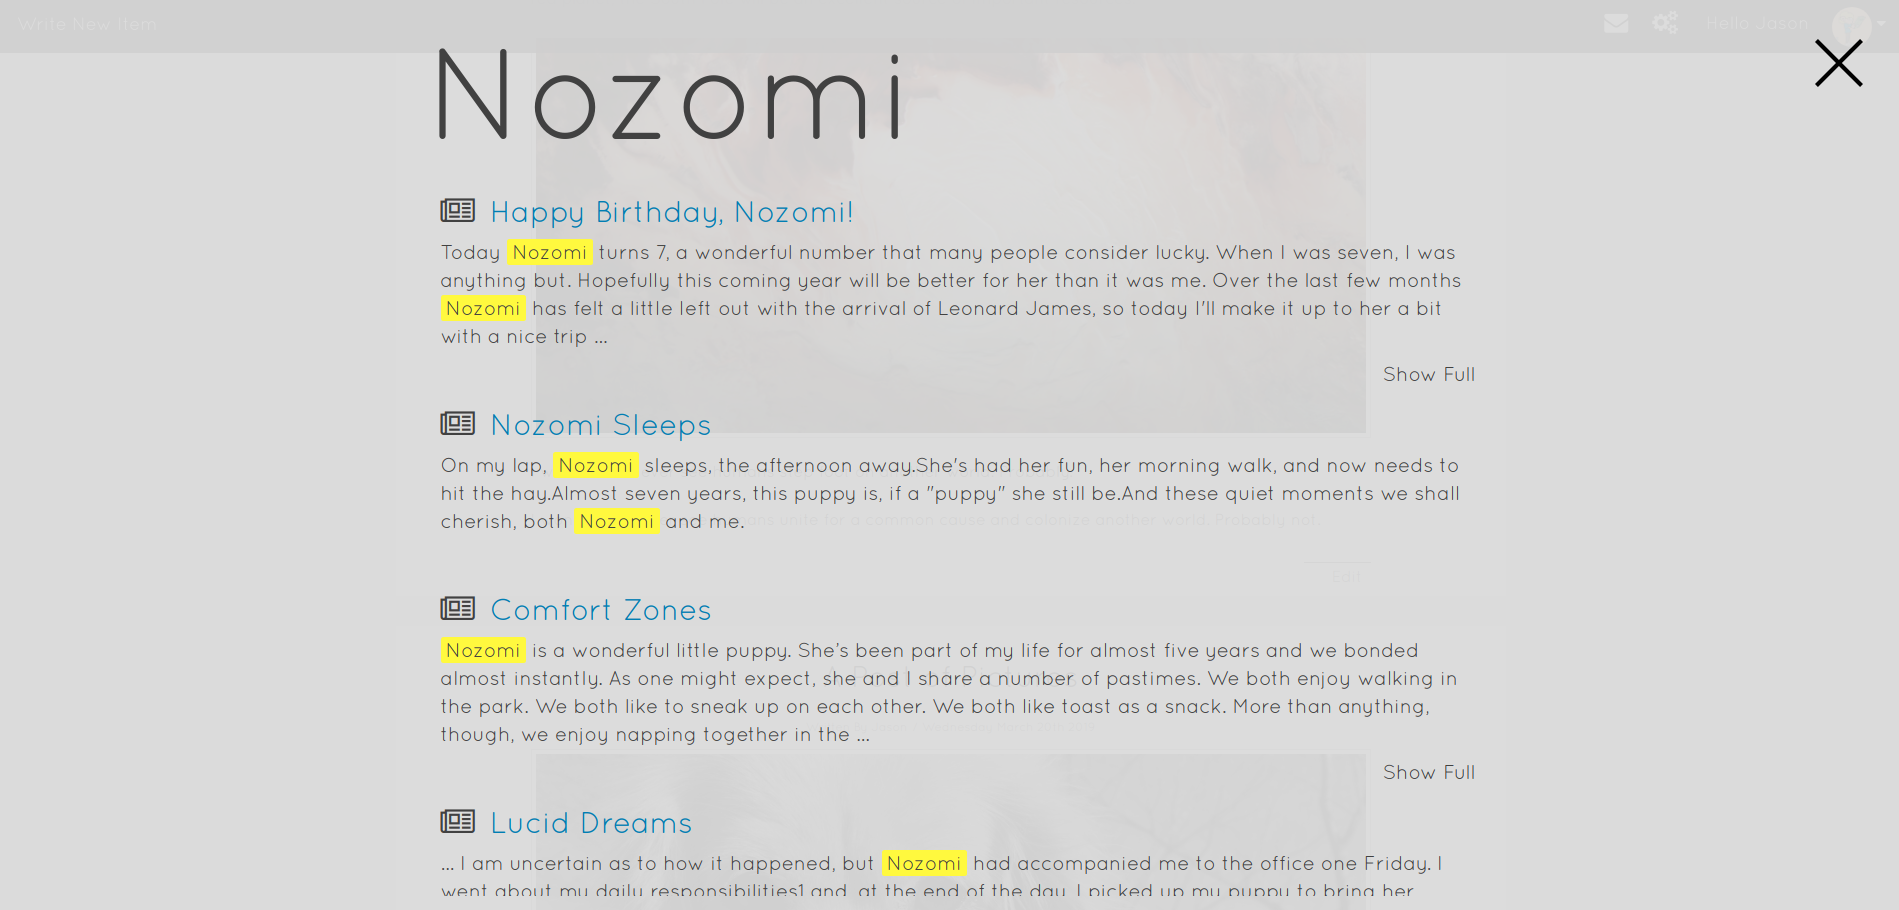 002 - Search Results for Nozomi